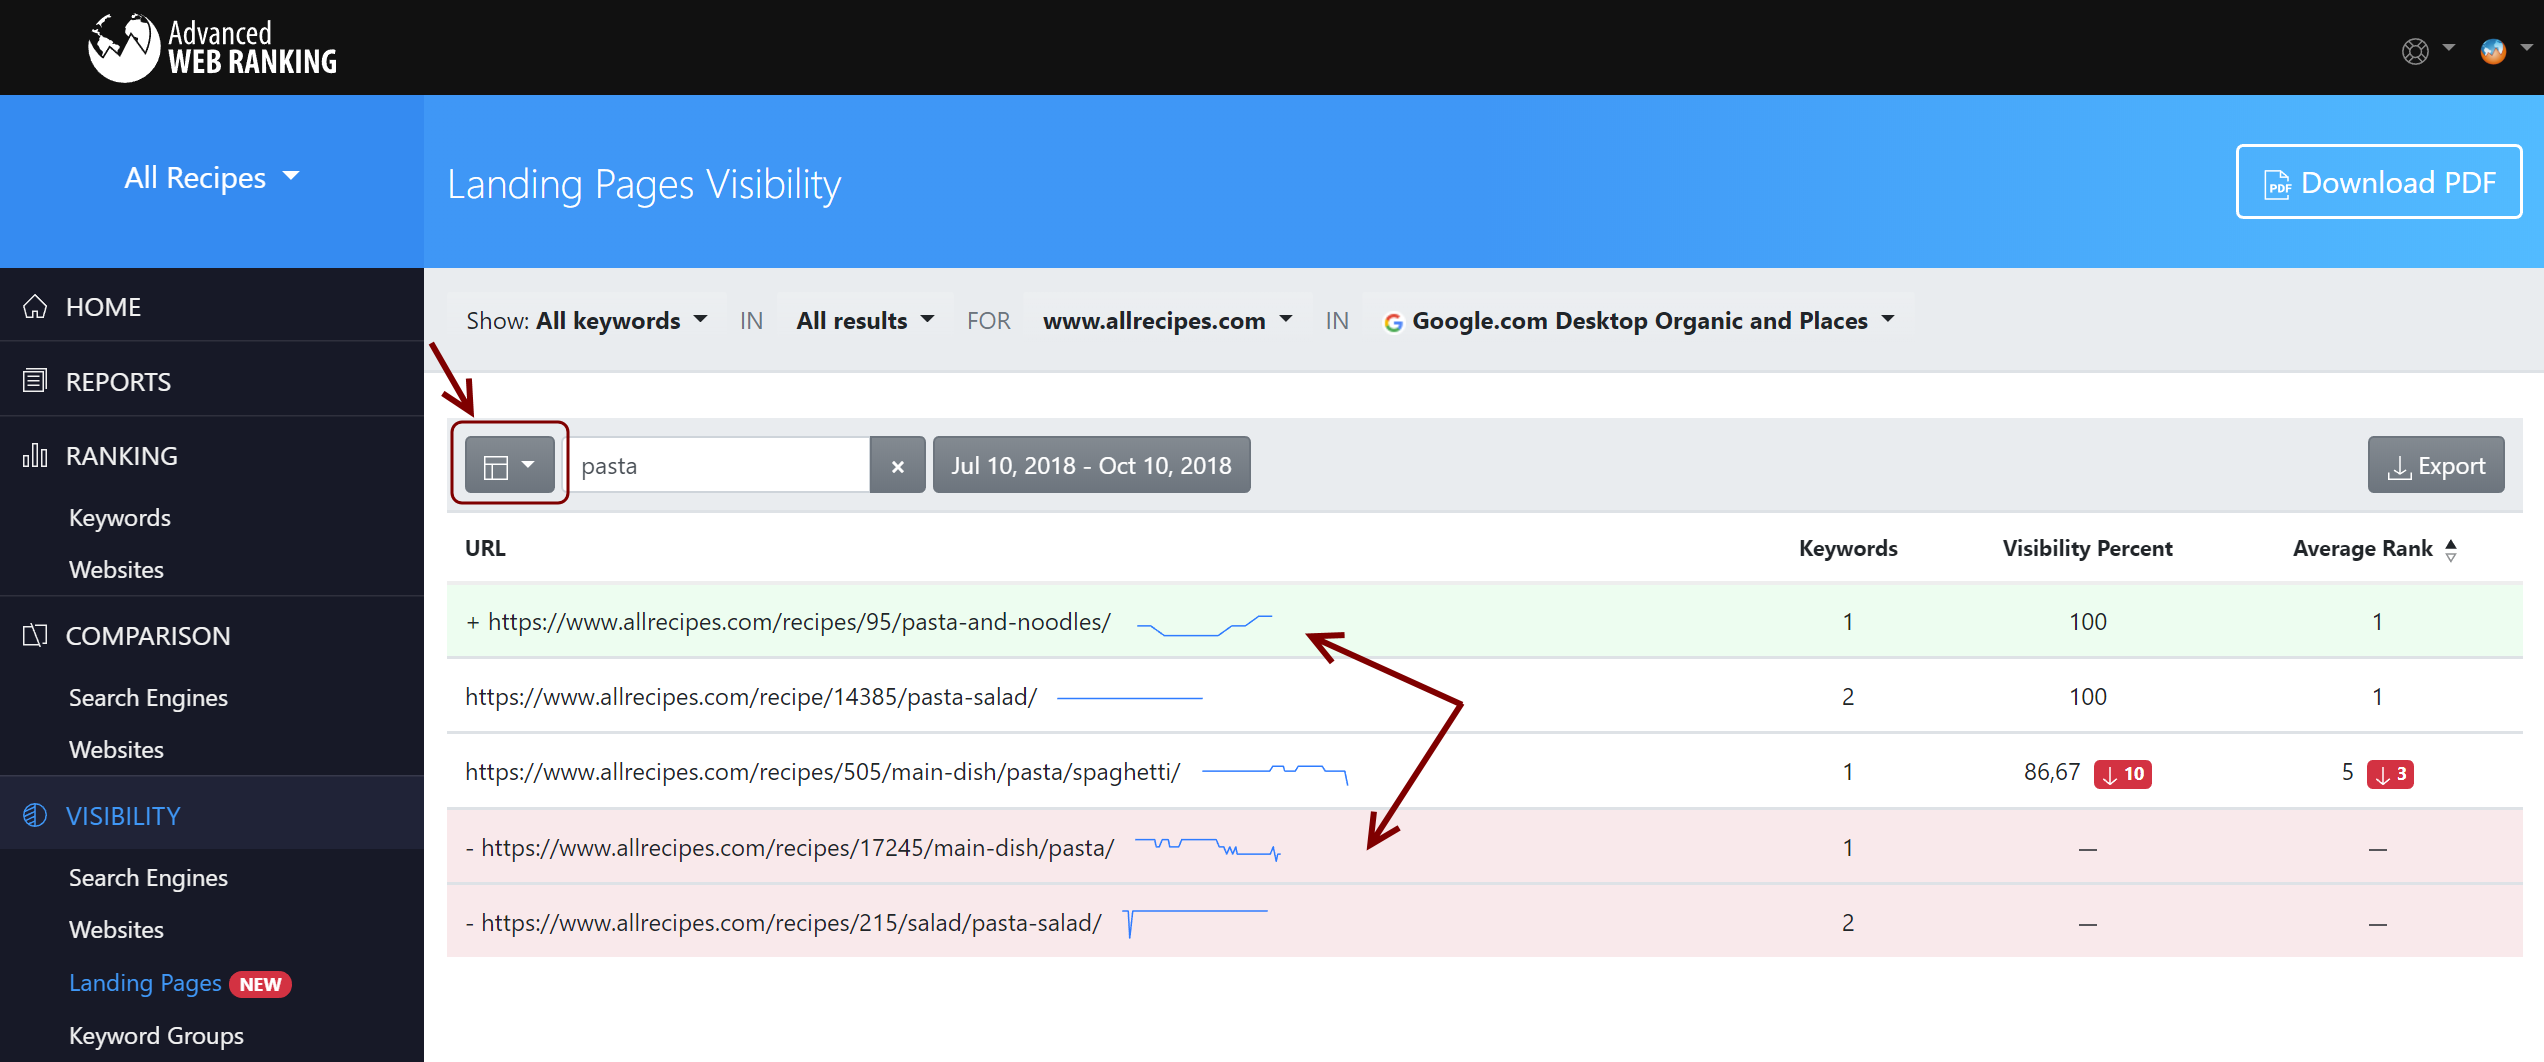 Landing pages visibility report